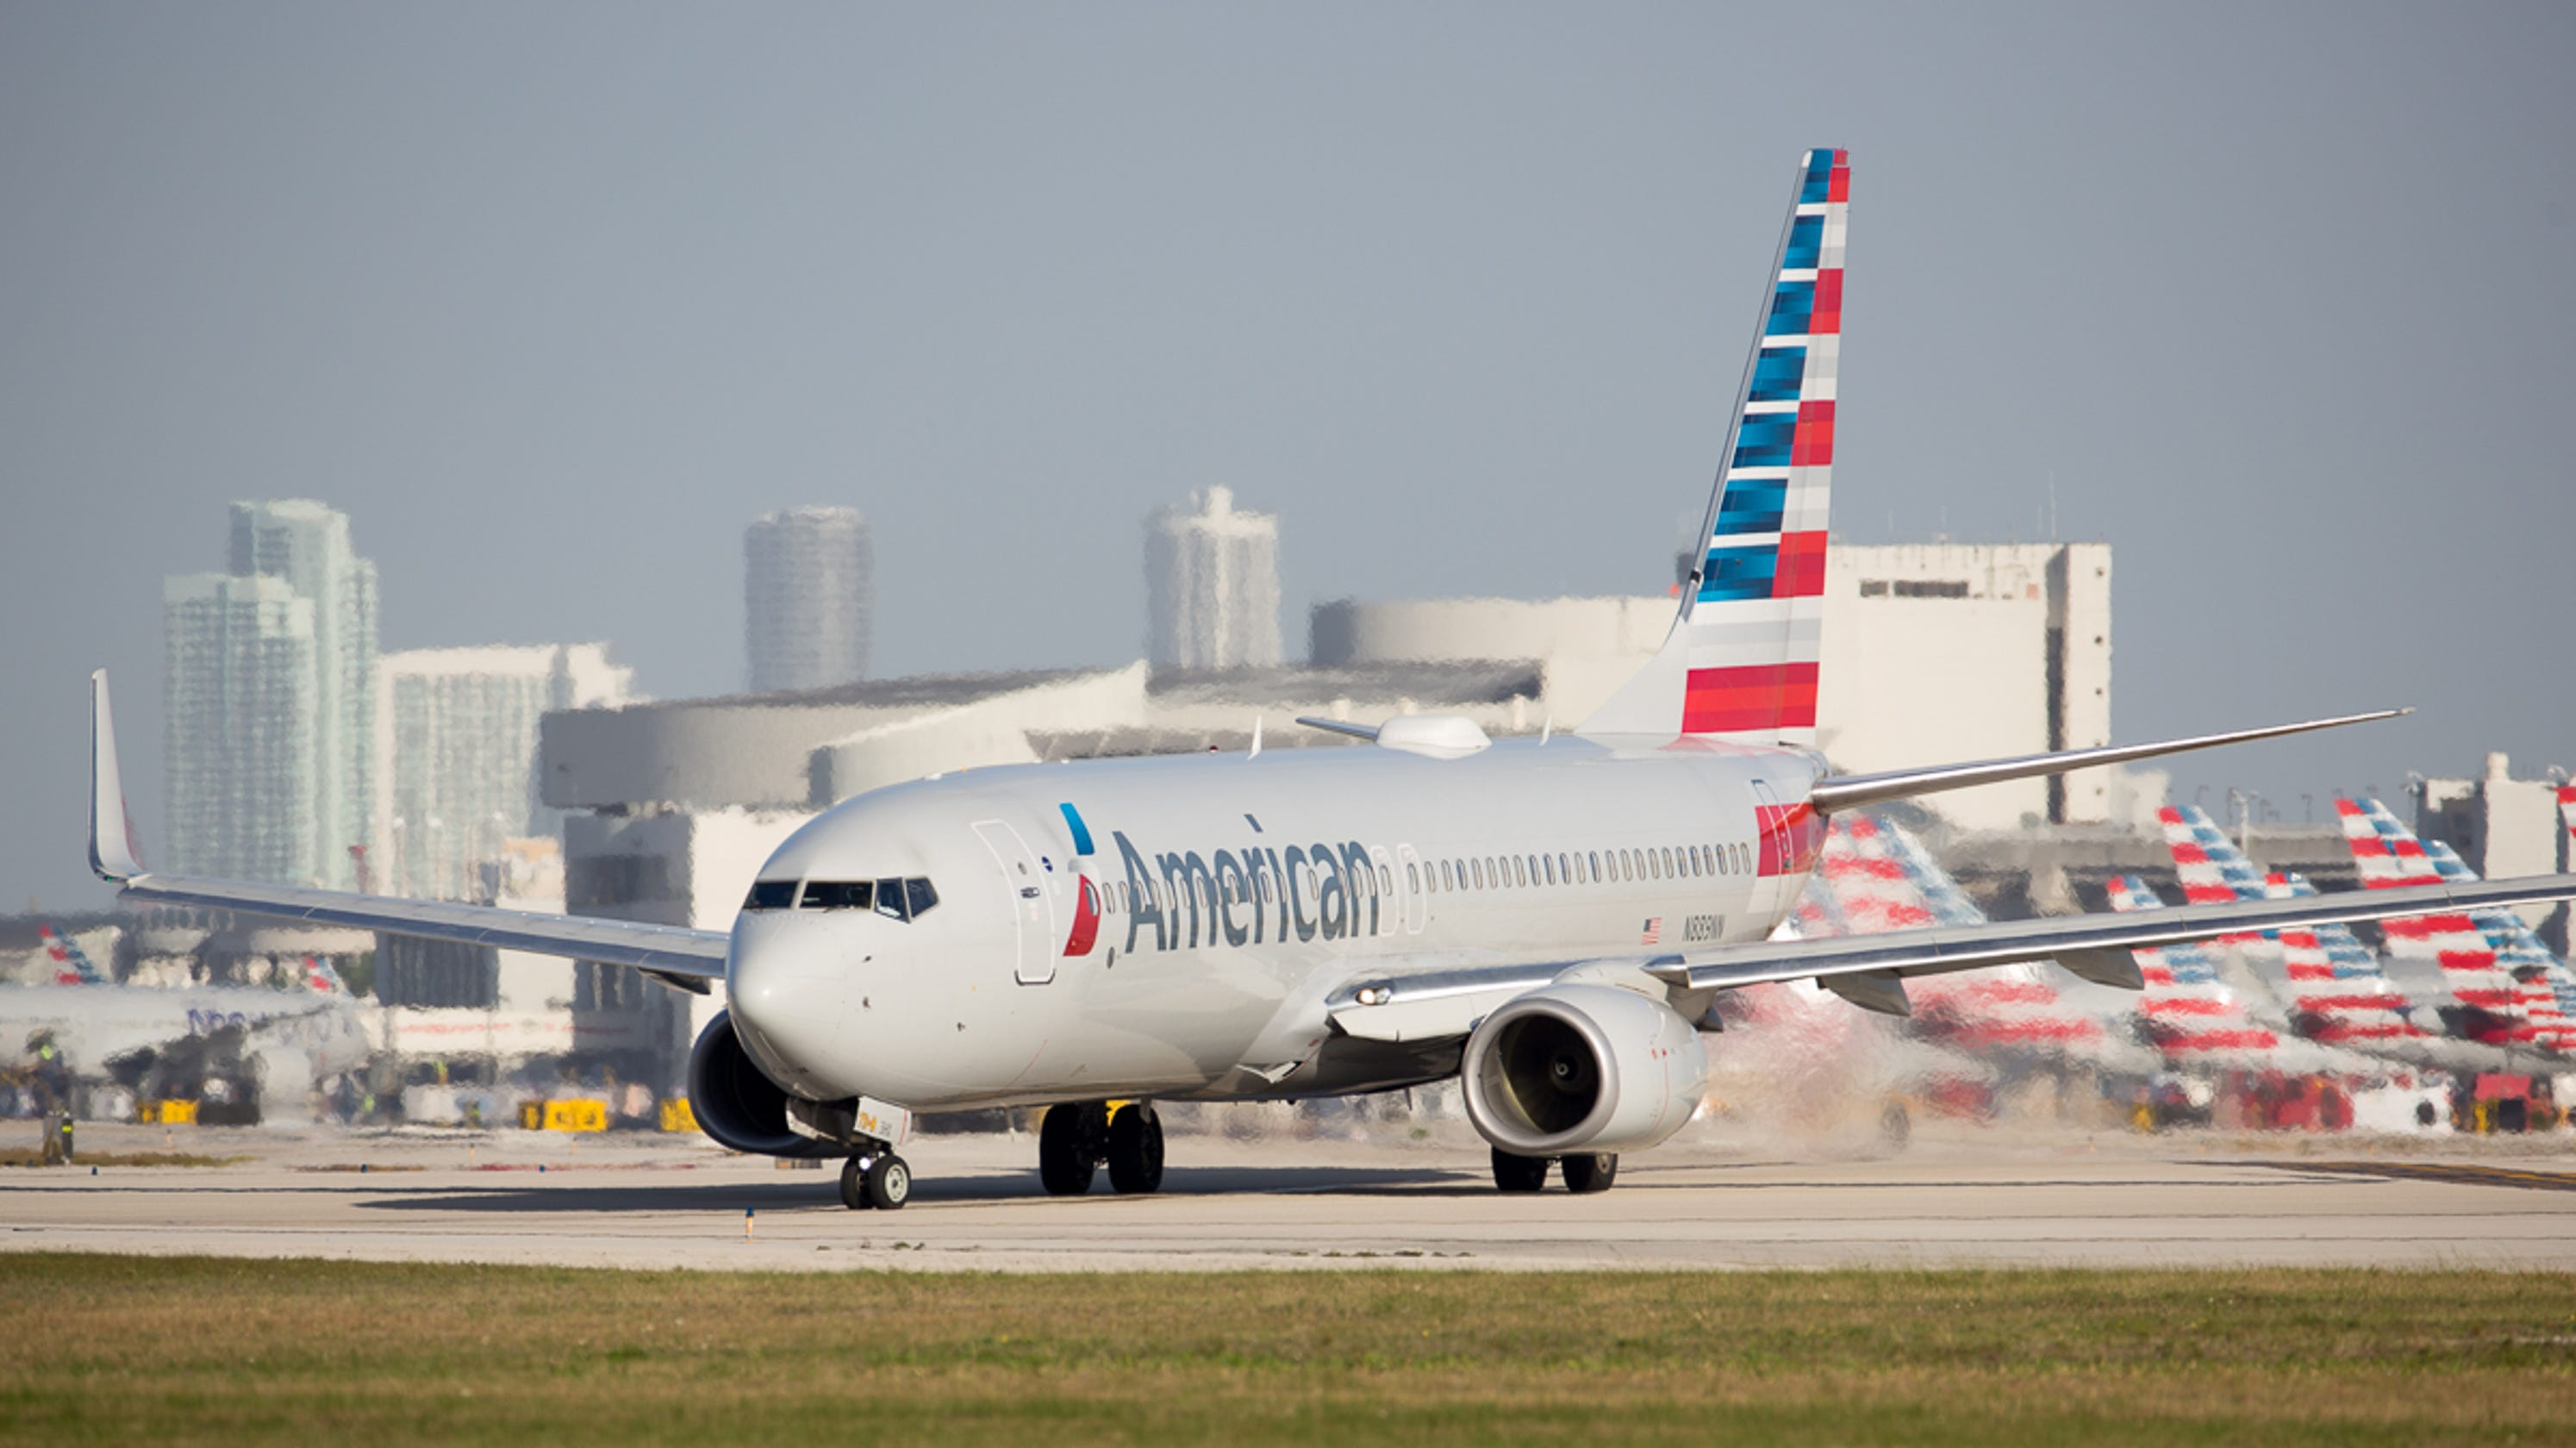 American Airlines sabotage: What we know and don't know